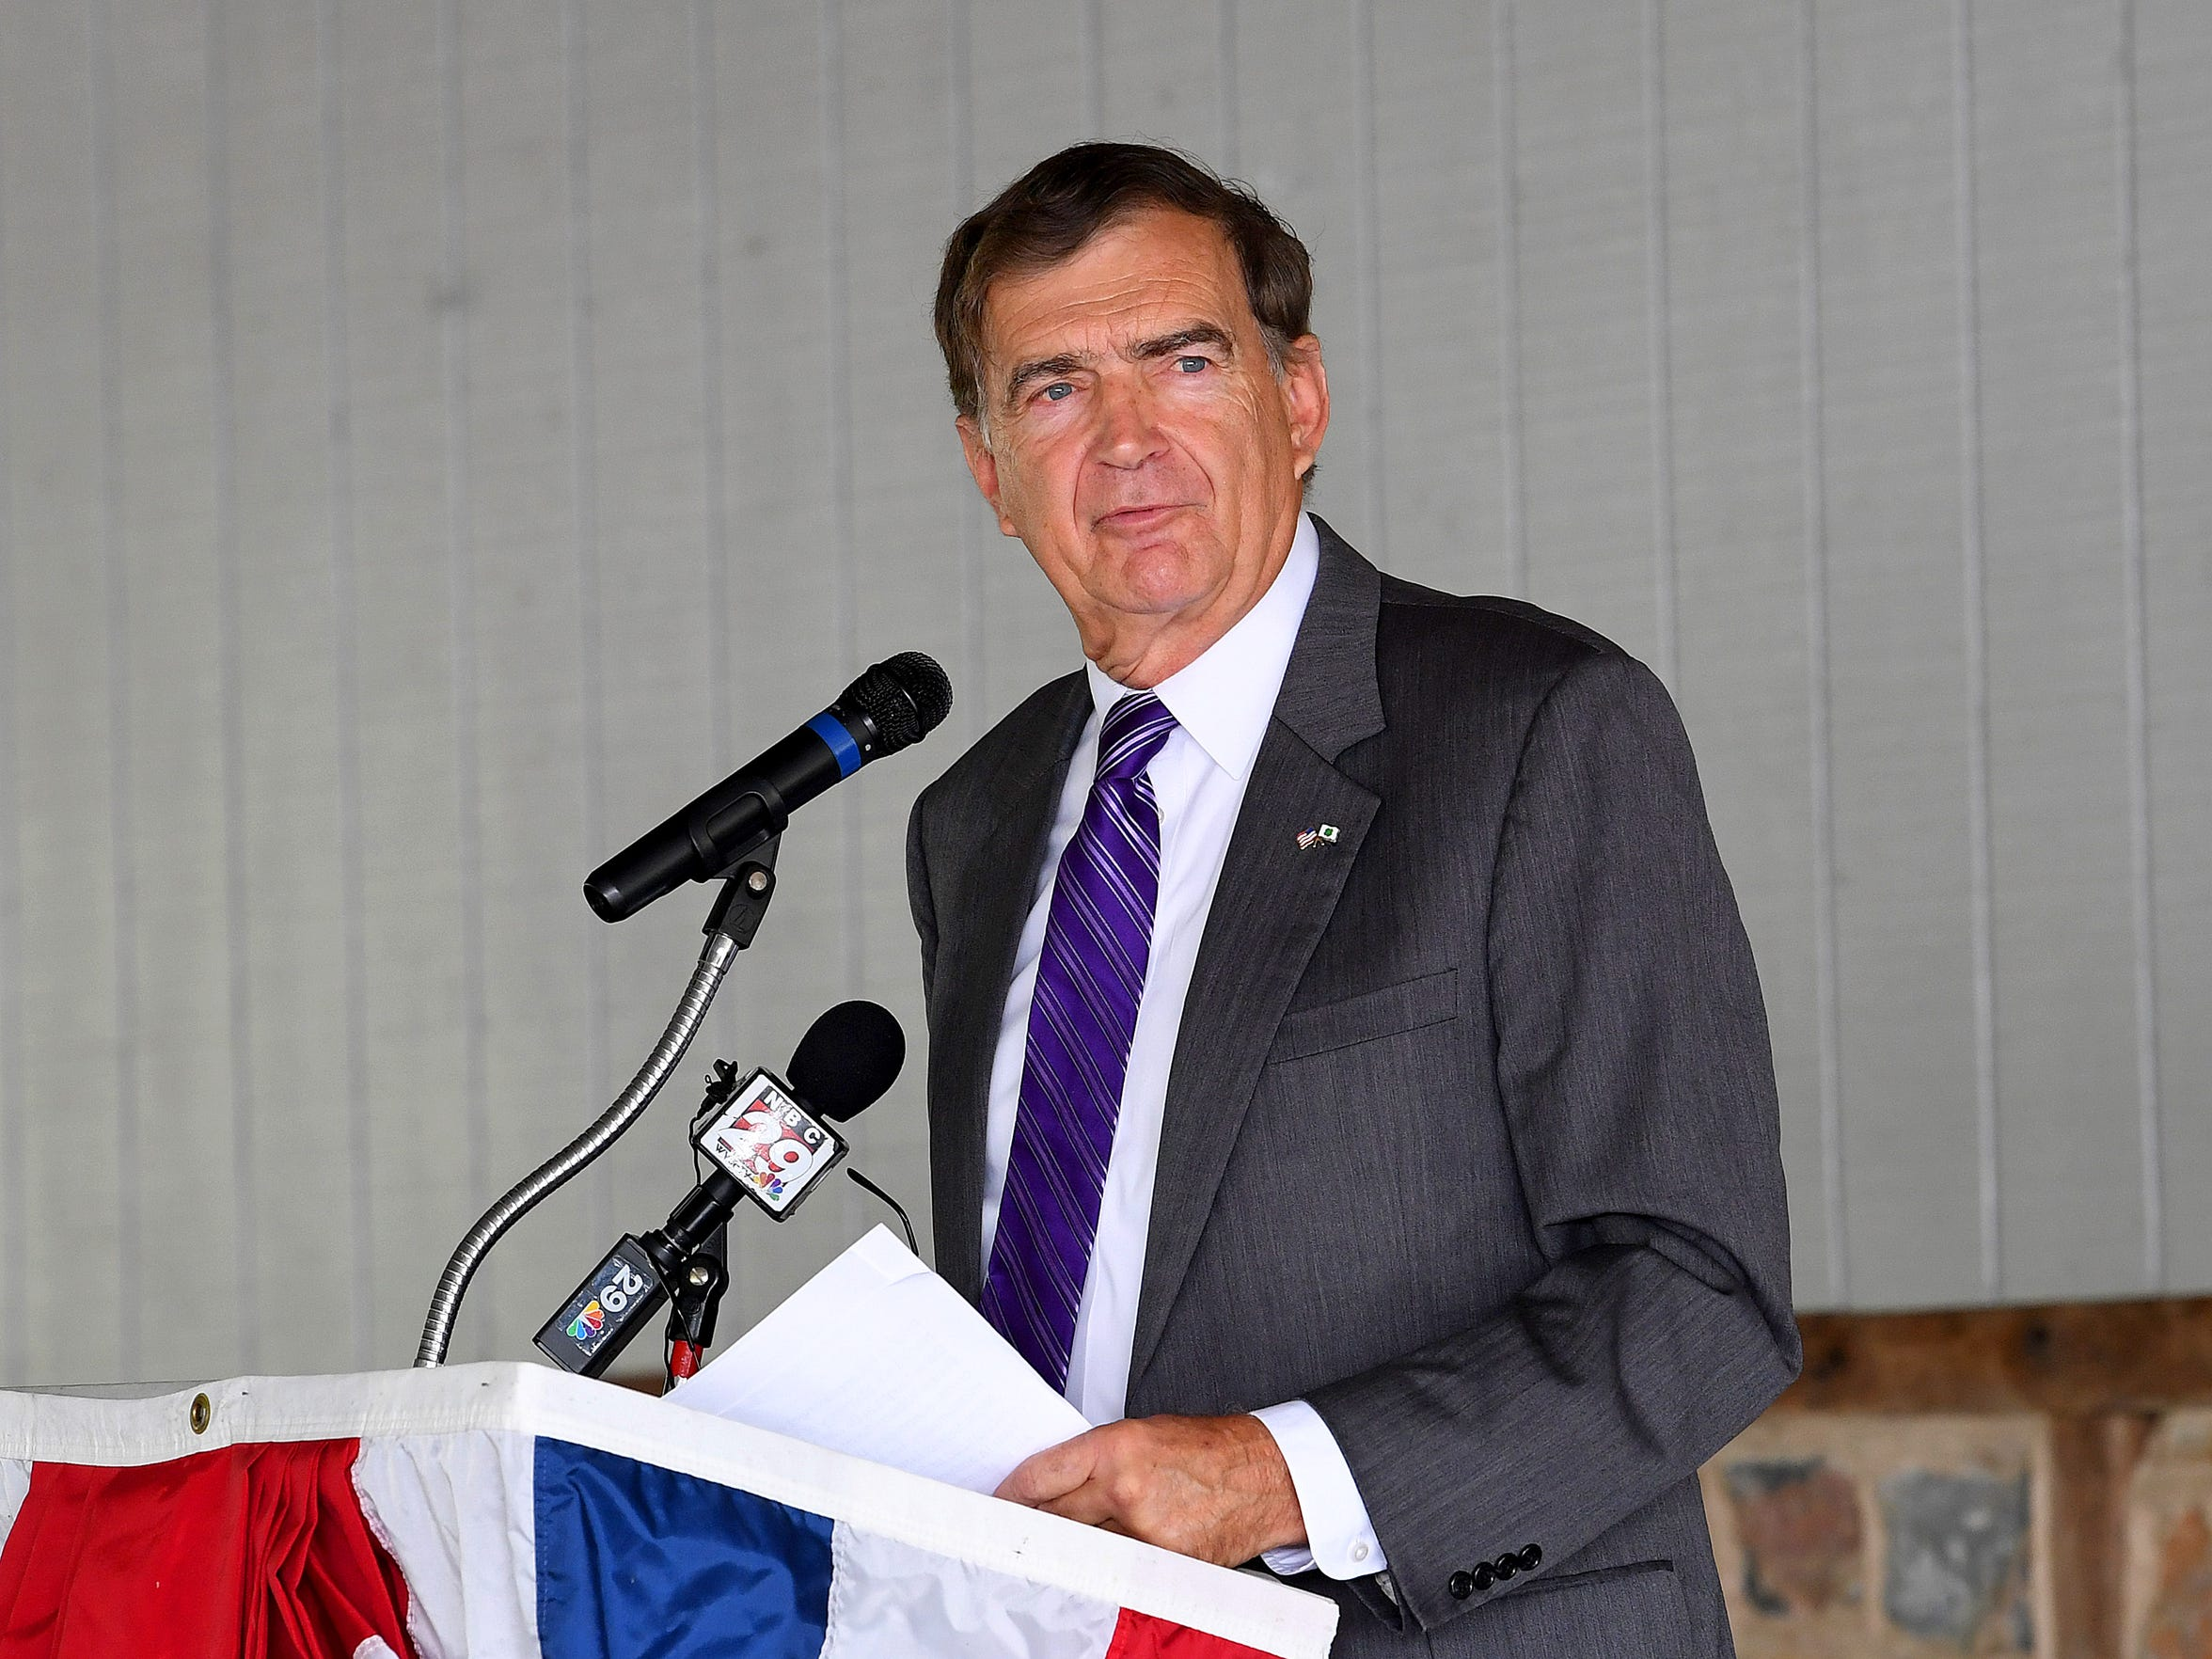 A member of the Virginia joint subcommittee to study mental health services in the 21st century, Sen. Emmett W. Hanger Jr., R-Augusta, addresses those gathered for a naturalization ceremony at Frontier Culture Museum on Sept. 18, 2018 in Staunton.